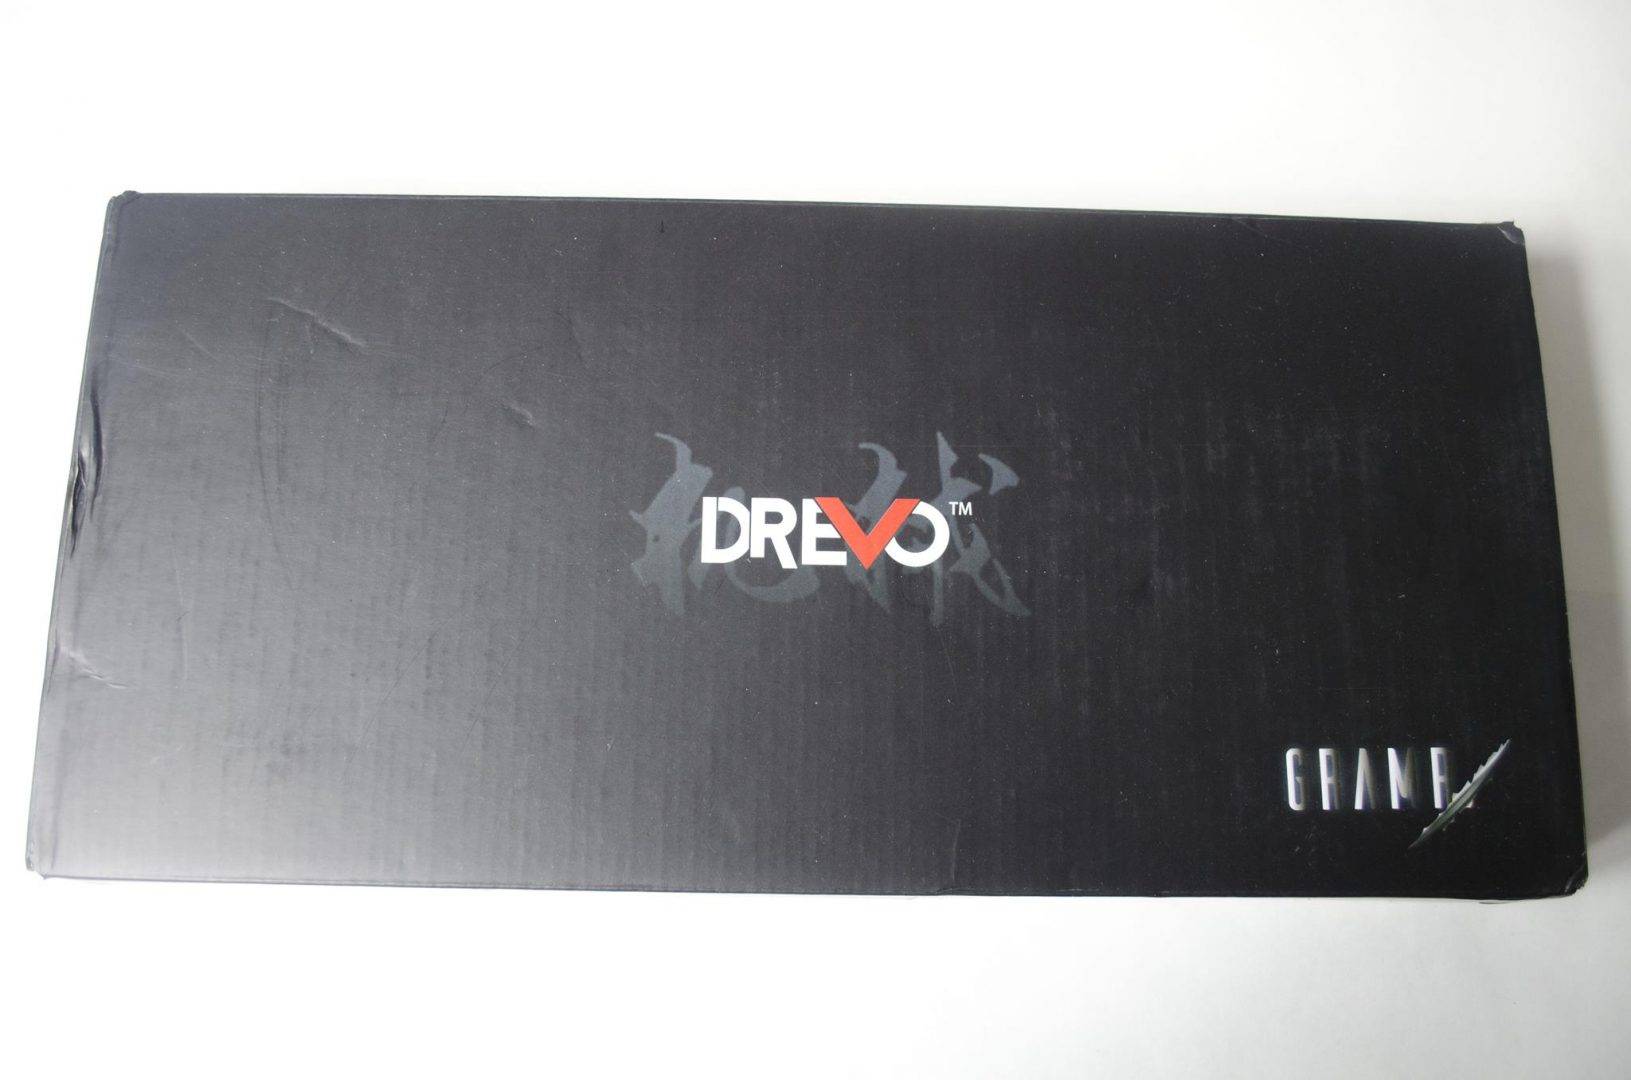 drevo gramr keyboard review